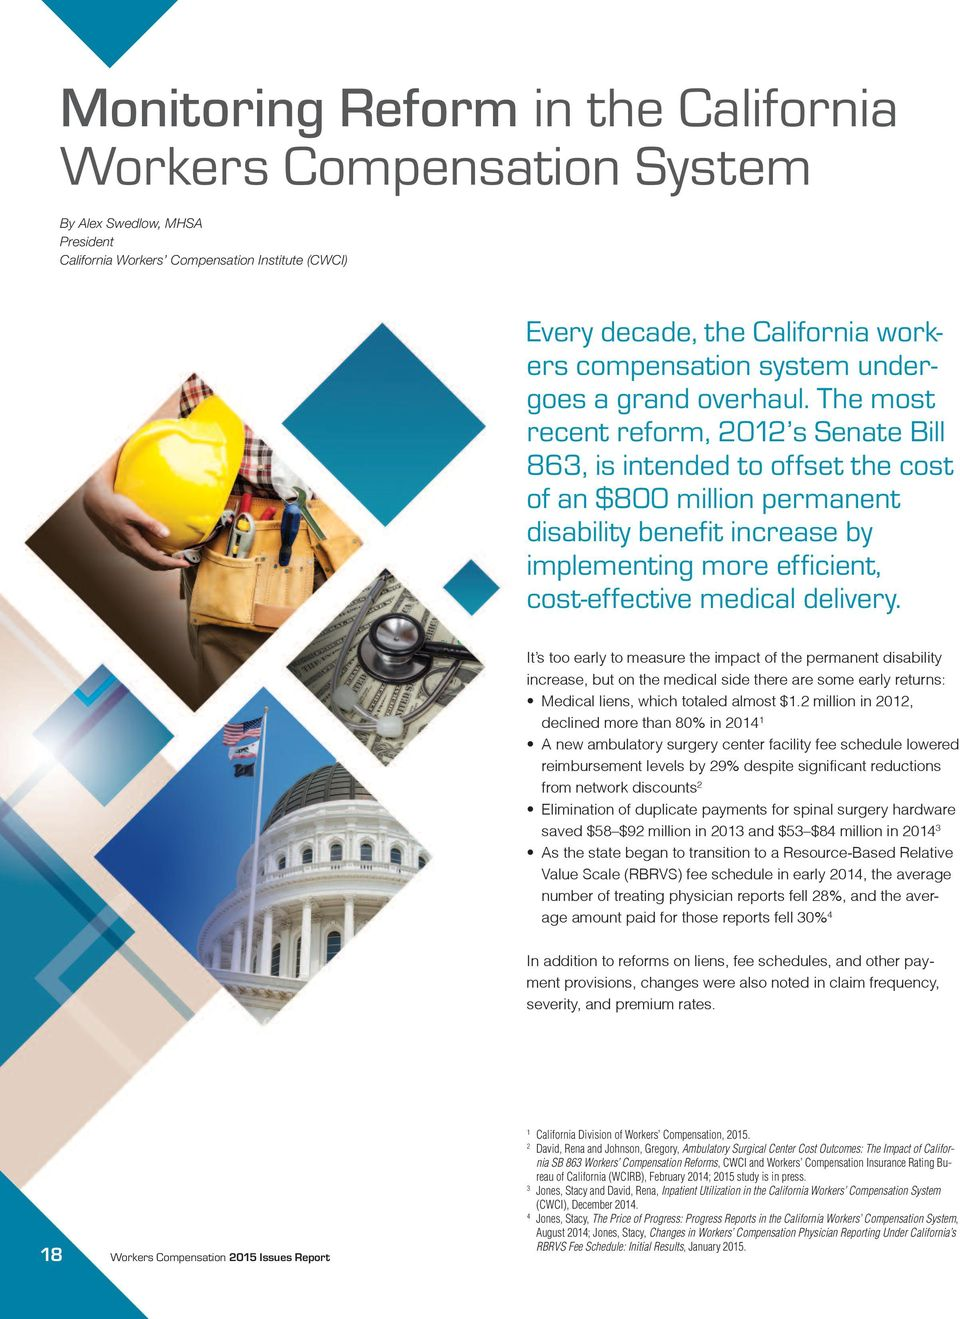 The most recent reform, 2012 s Senate Bill 863, is intended to offset the cost of an $800 million permanent disability benefit increase by implementing more efficient, cost-effective medical delivery.